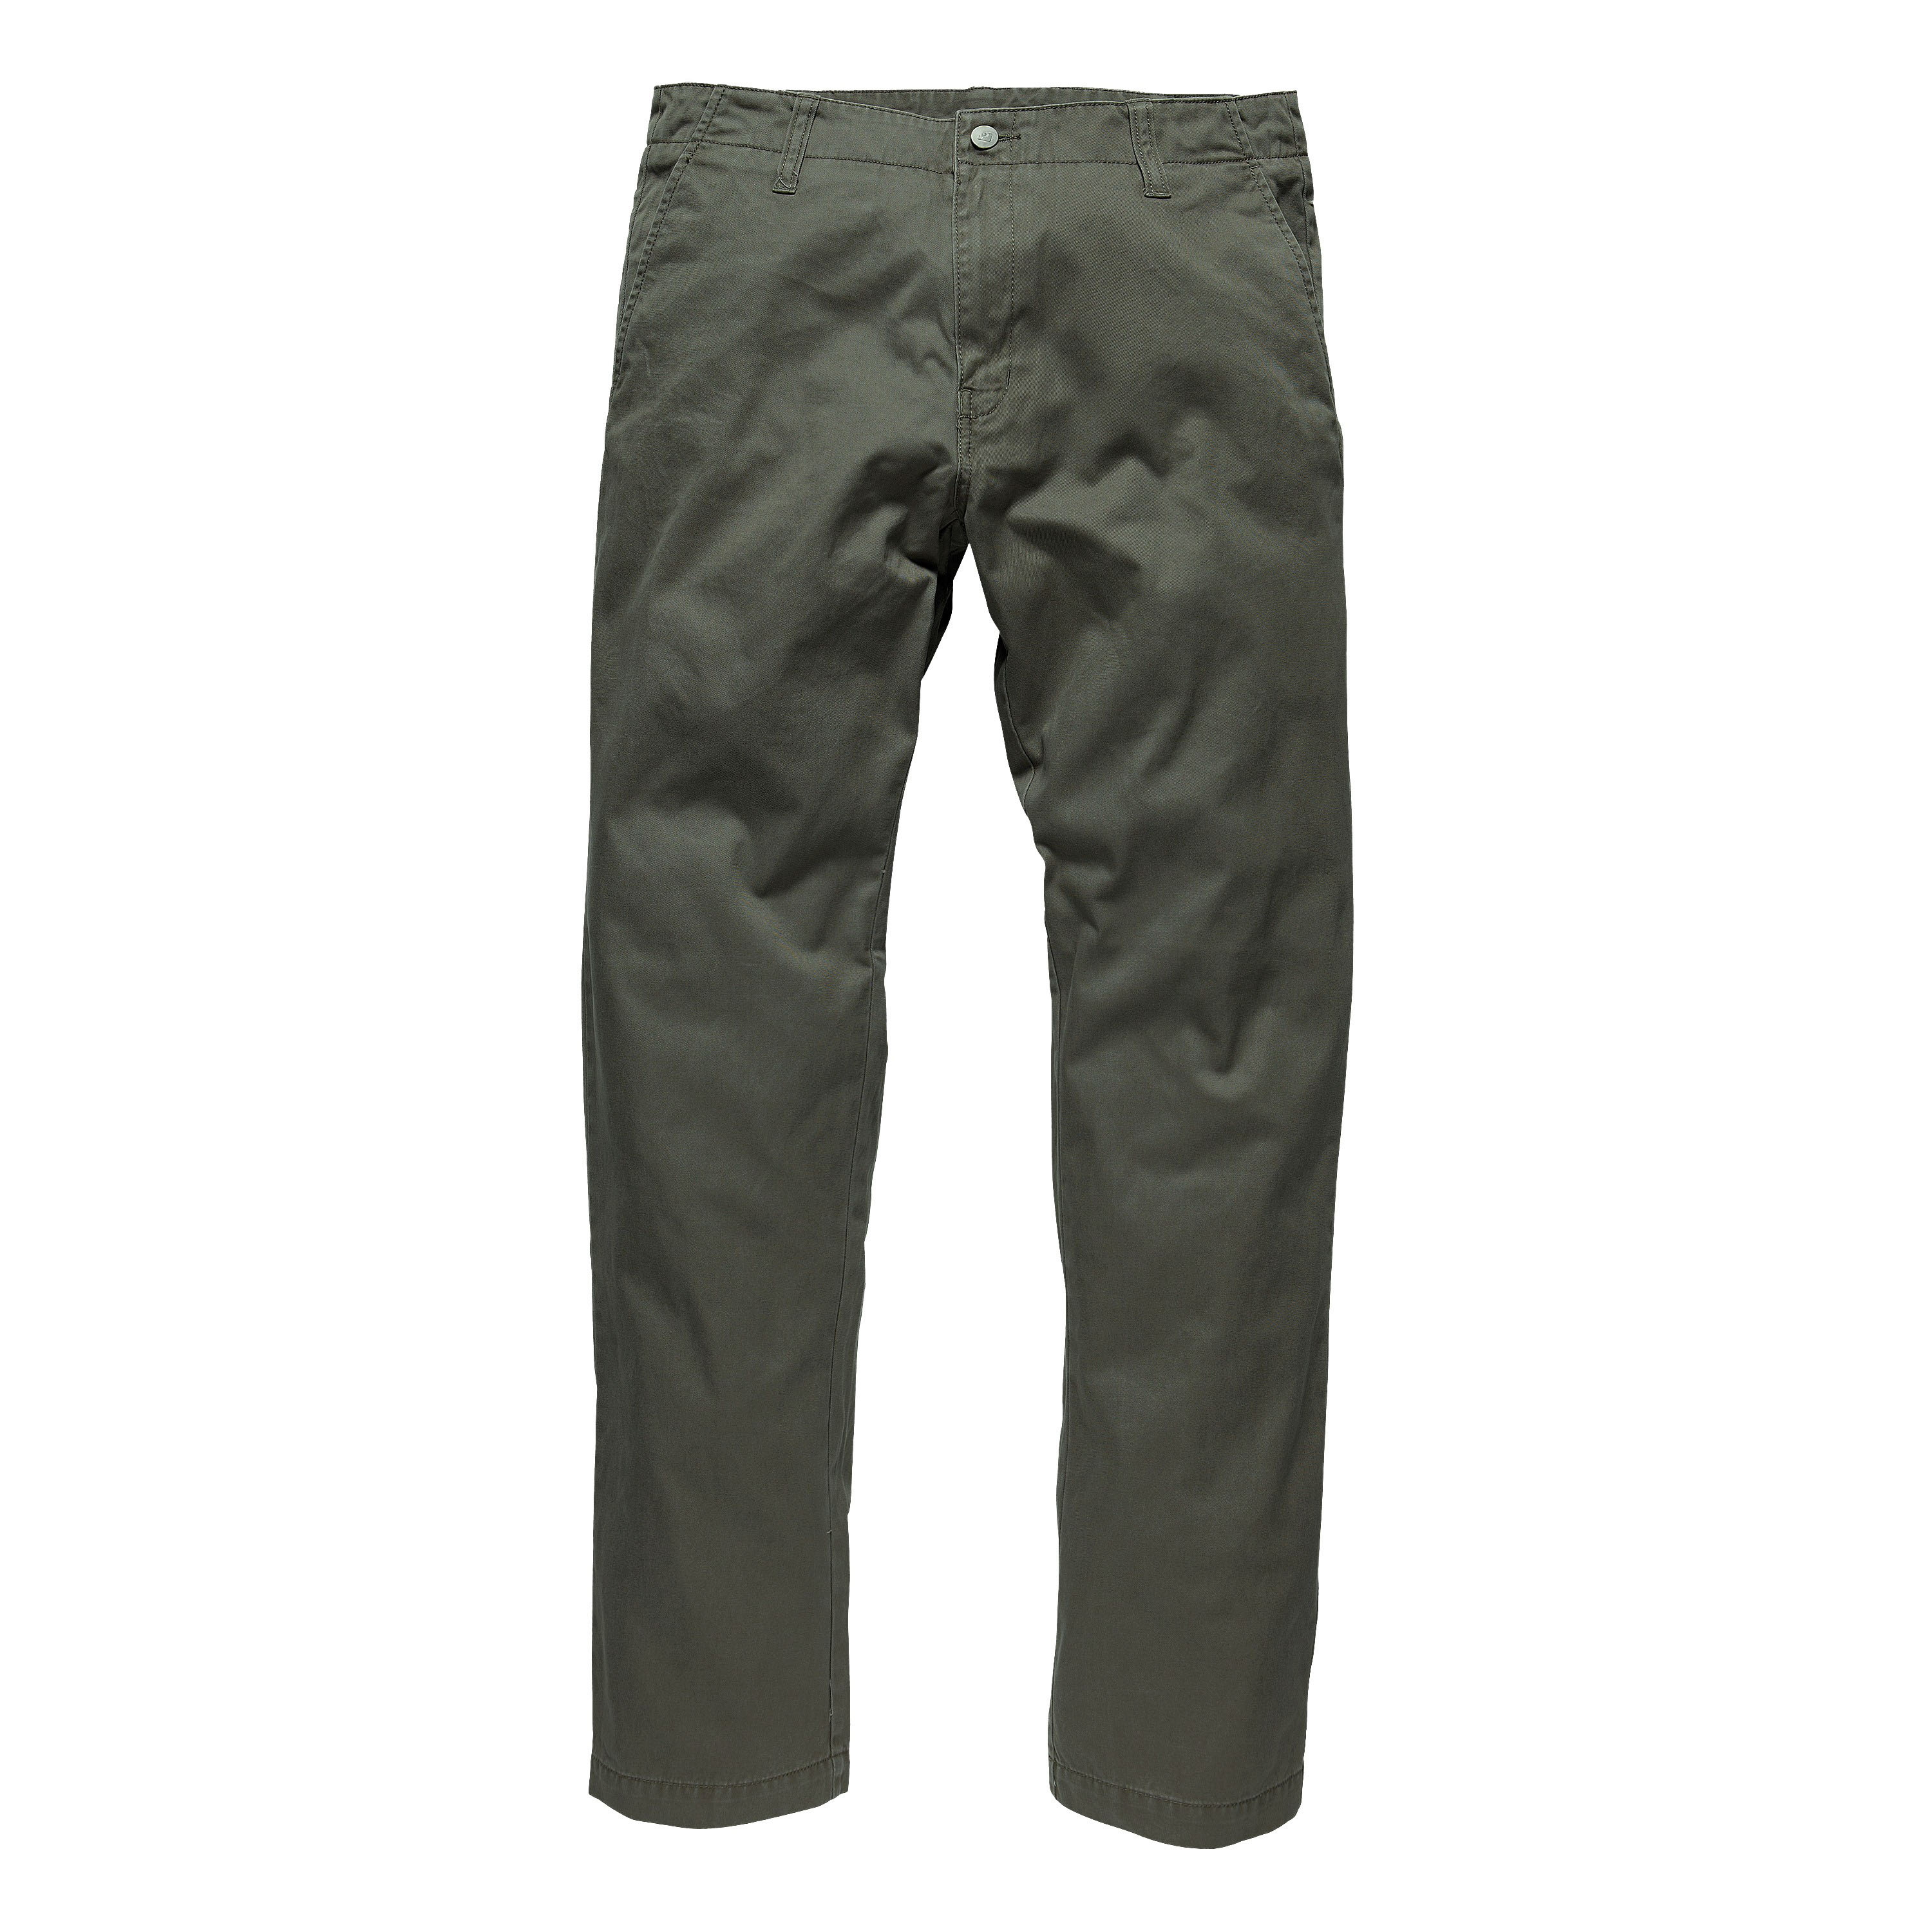 Pants Vintage Industries Cult Chino olive